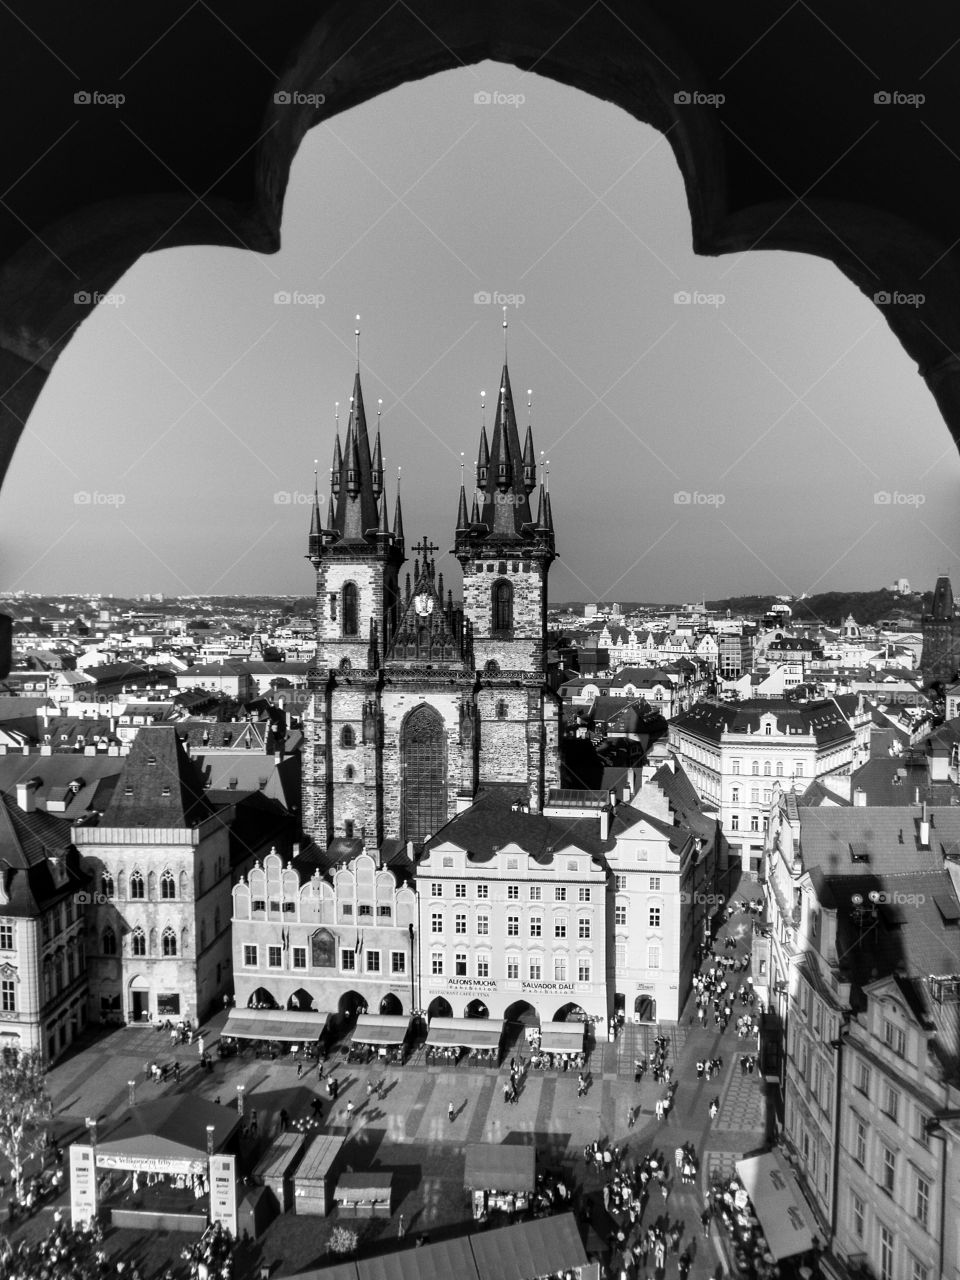 Týn Church. View of the Church of Our Lady before Týn and the city of Prague from the tower of the Old Town Hall, Prague.